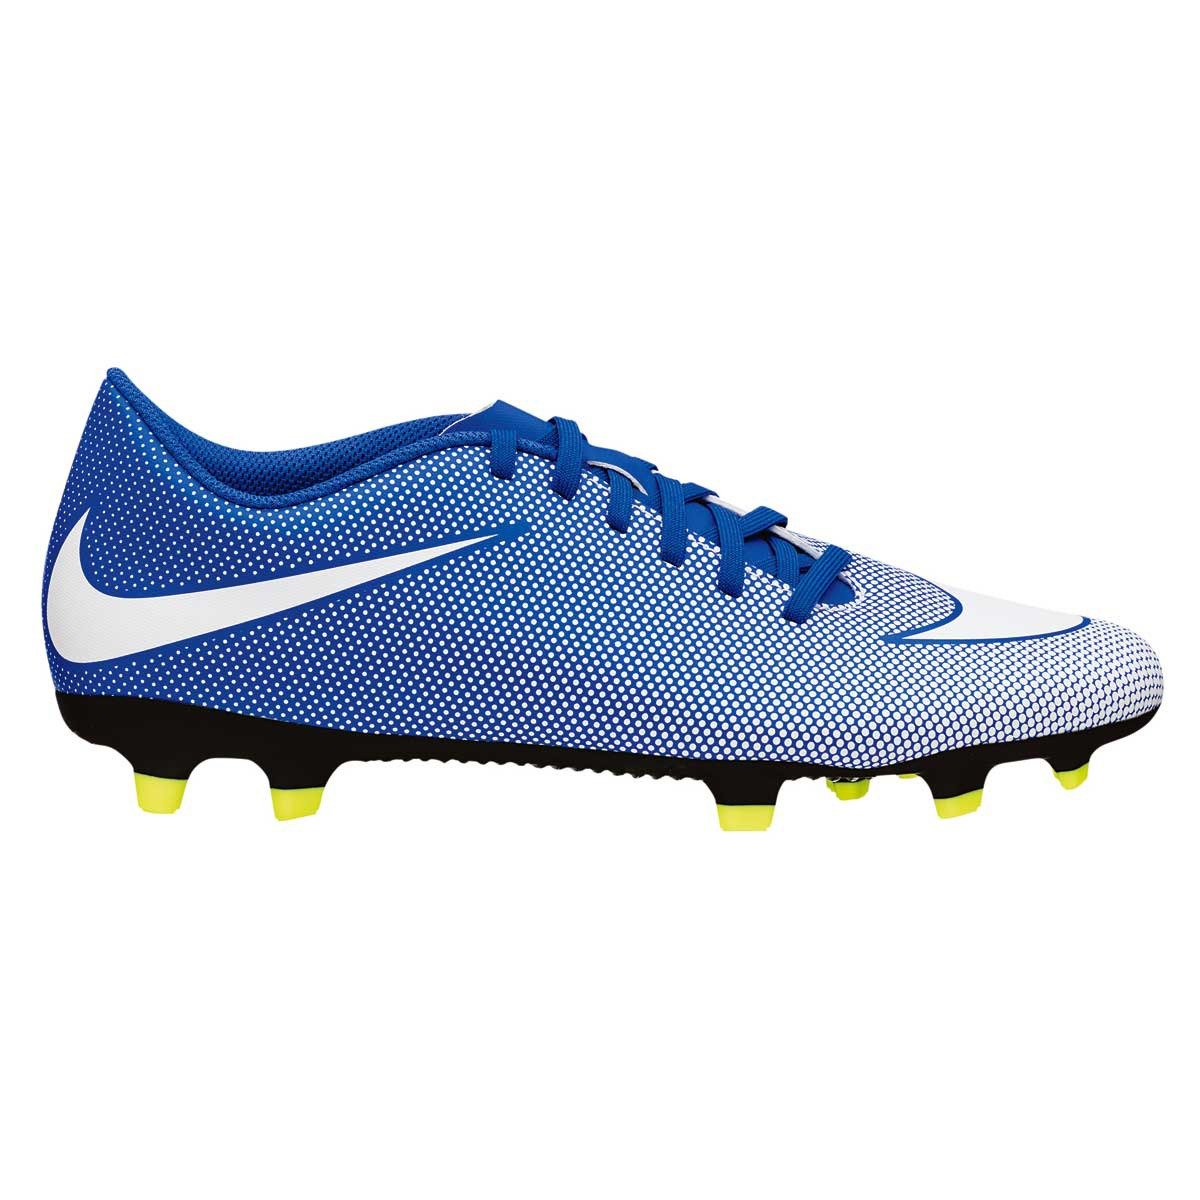 e69eac7db21ff Nike Men s Bravata II FG Blue Football Shoes (7 UK India)  Buy Online at  Low Prices in India - Amazon.in